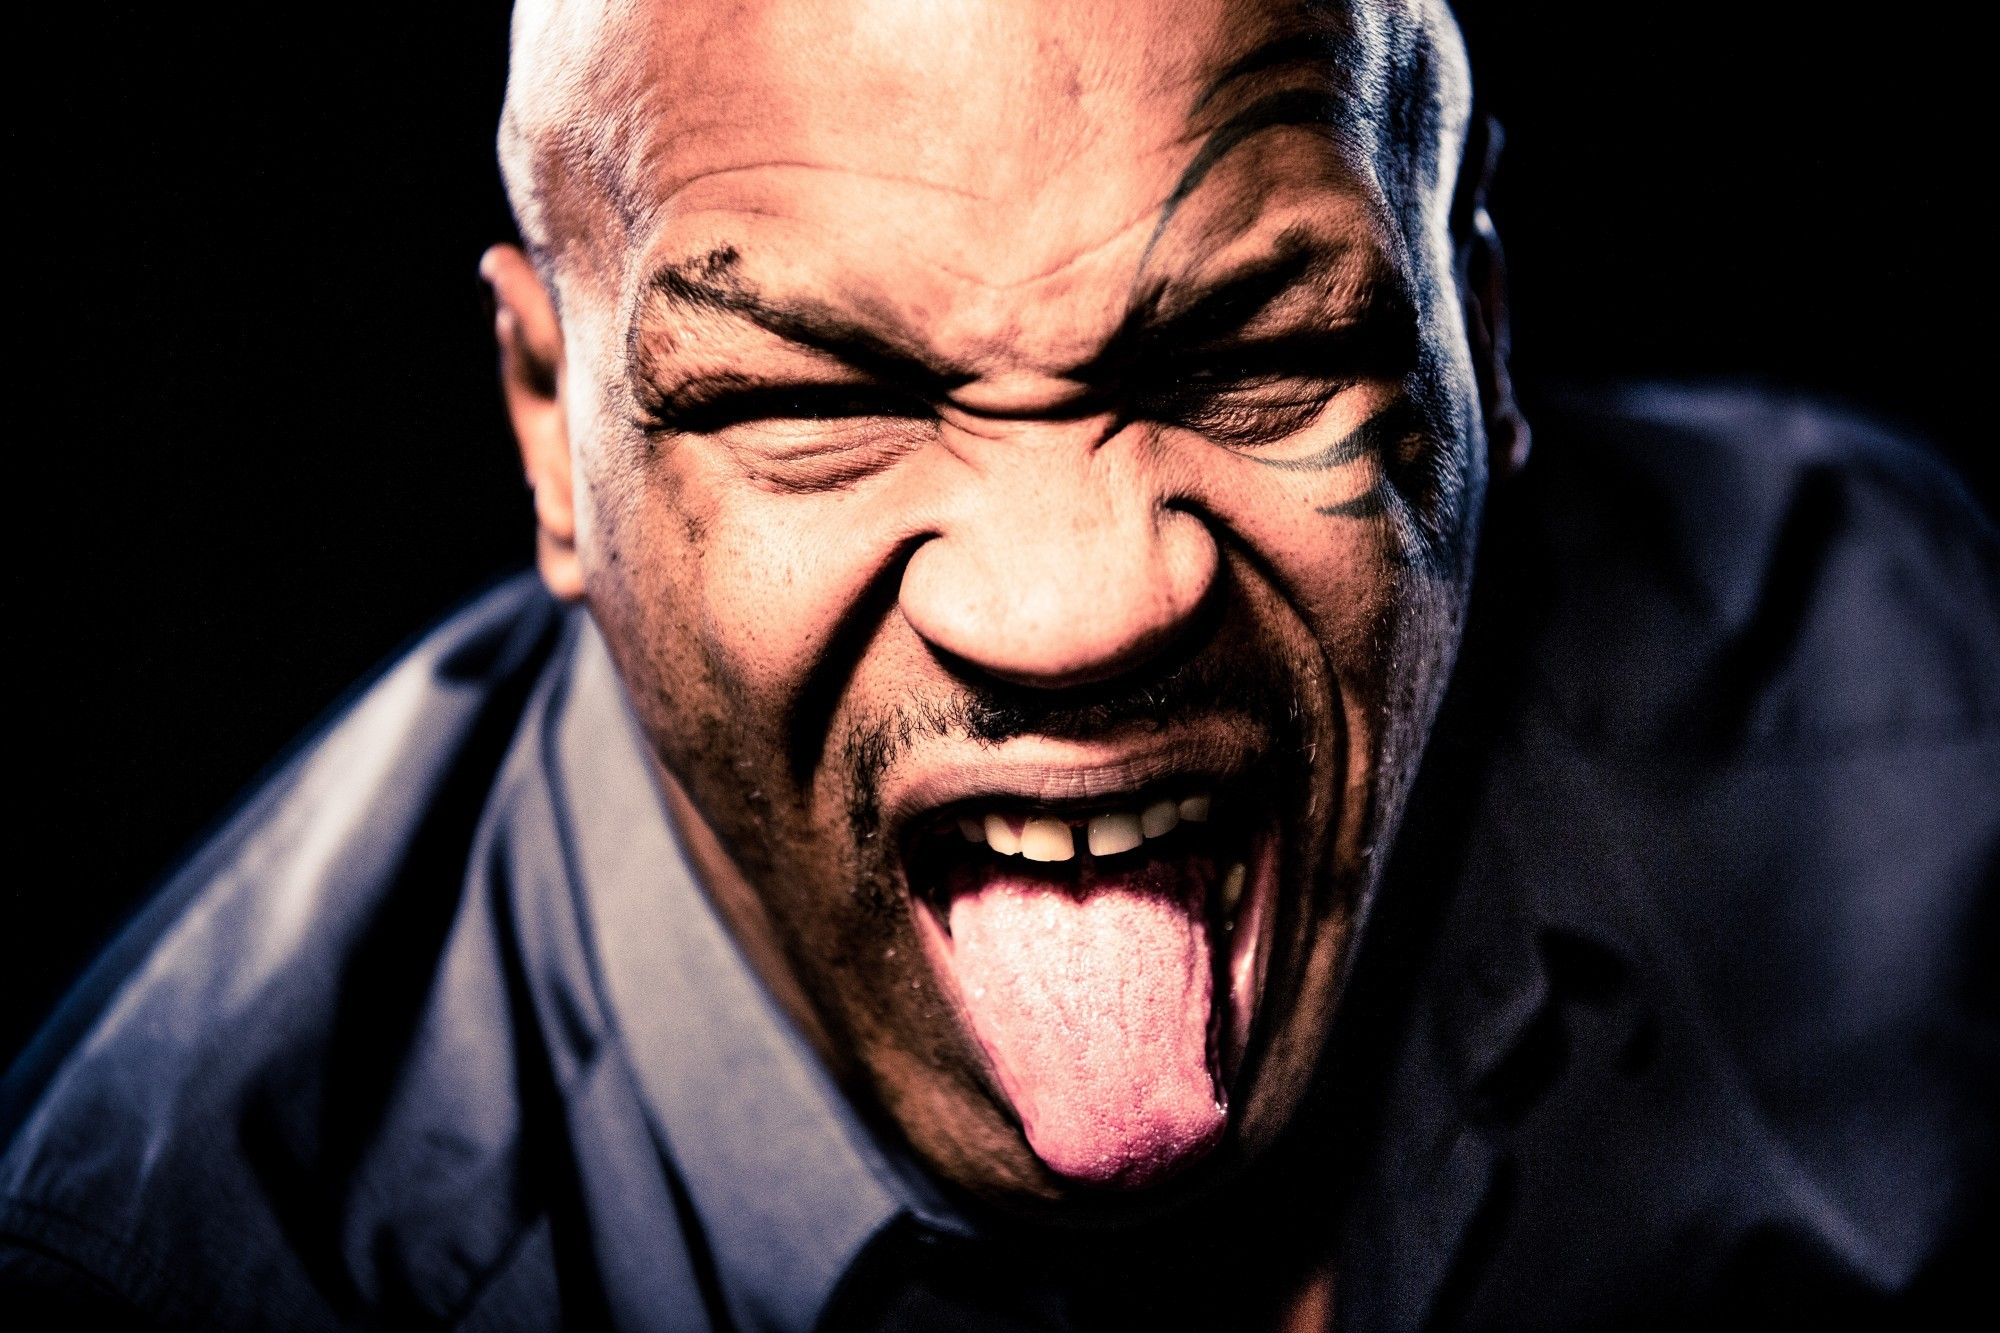 Mike Tyson images